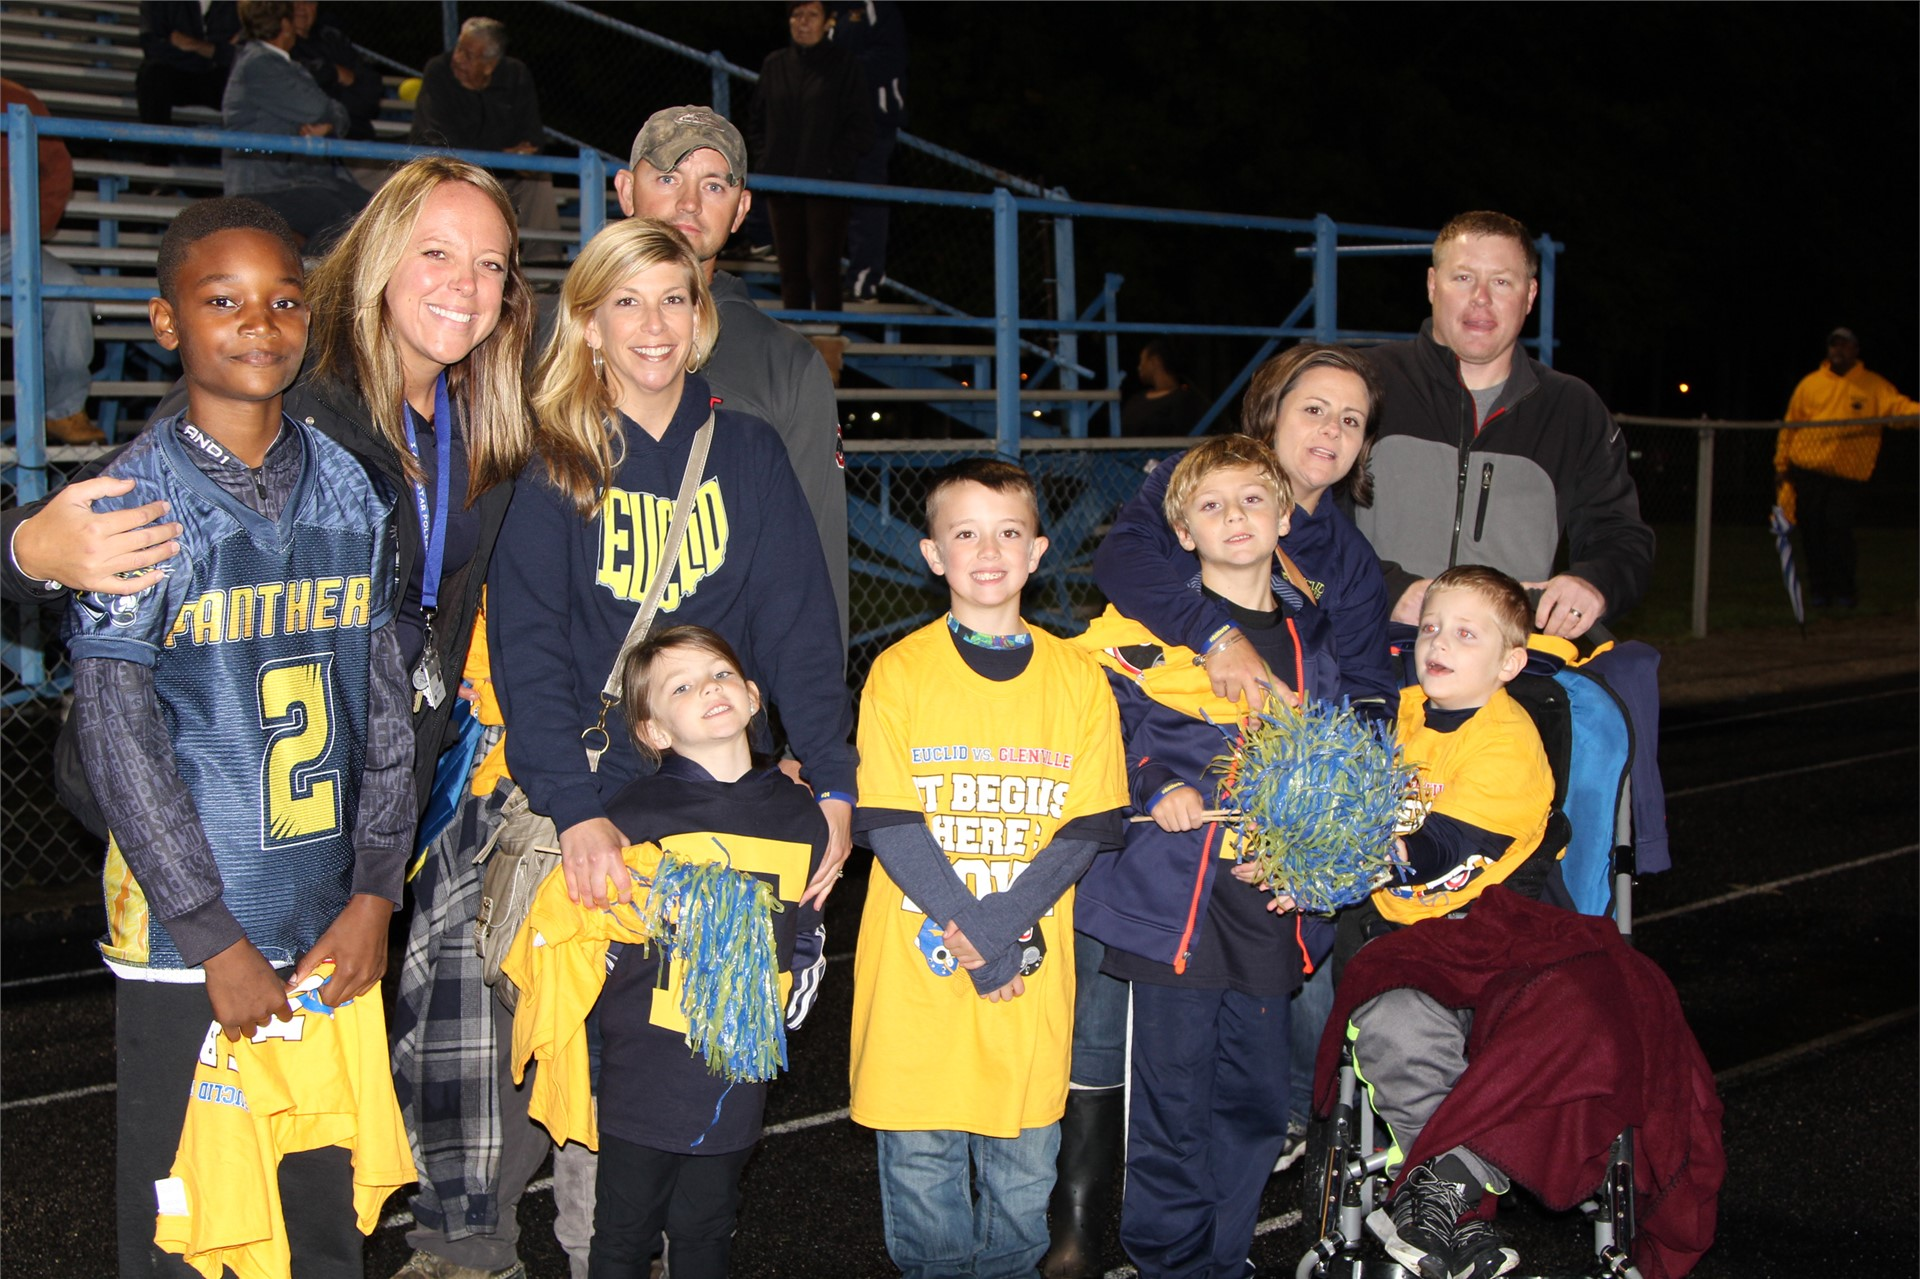 Arbor Elementary School students honored at Friday night football game